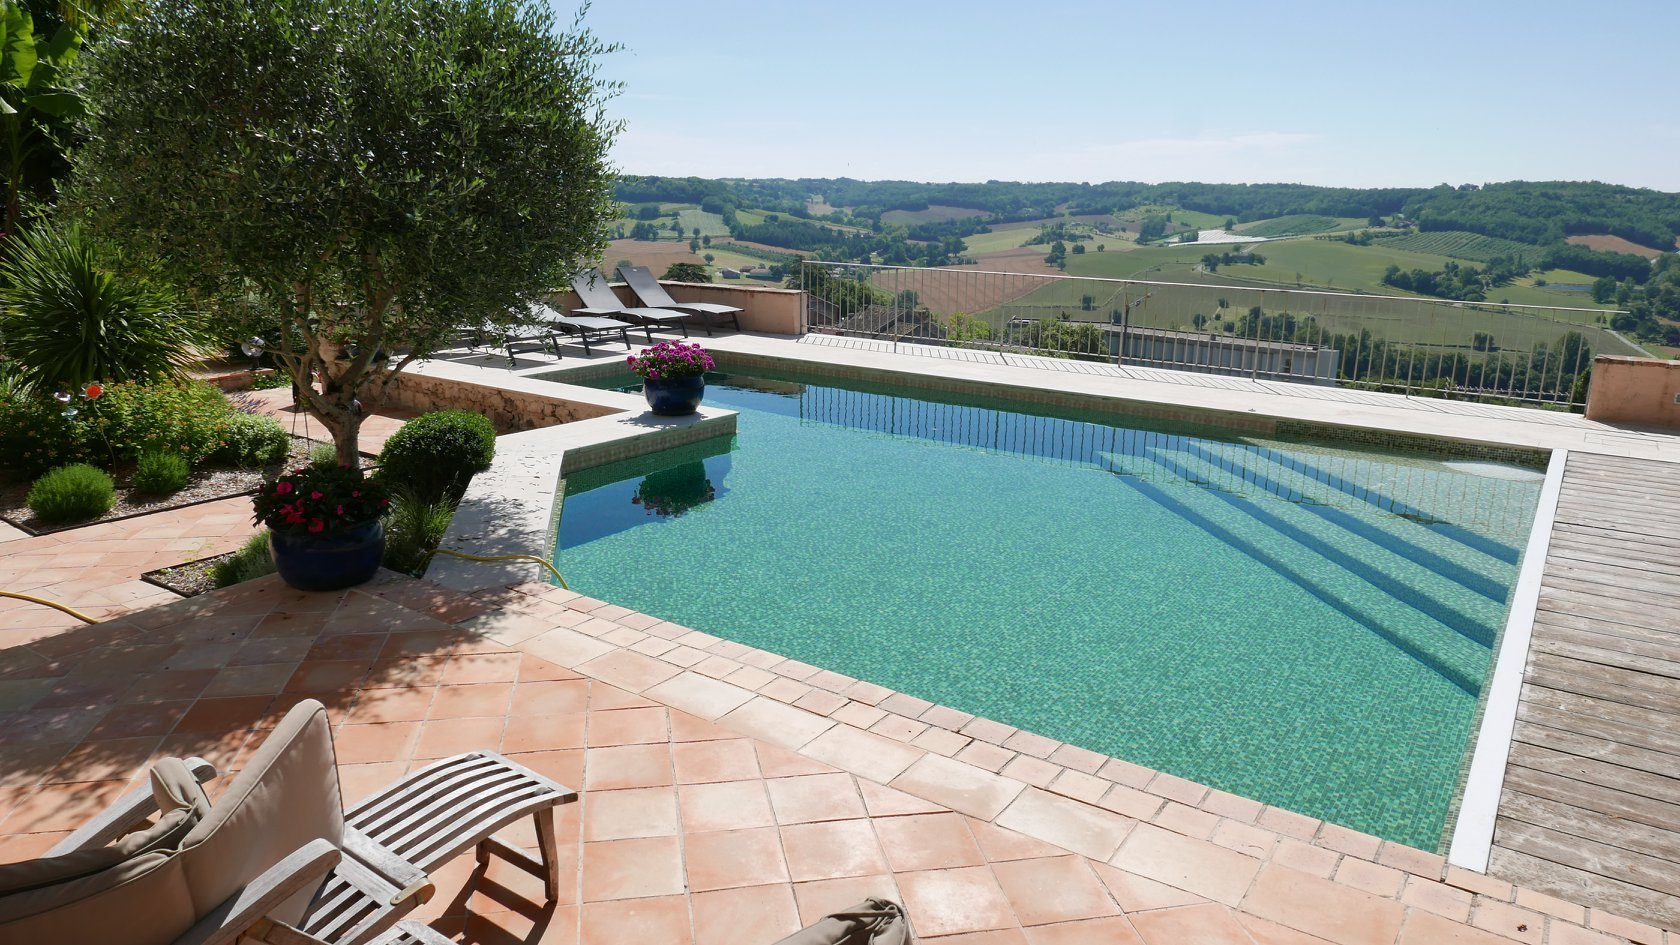 Swimming Pools Archives - Quercy Bleu